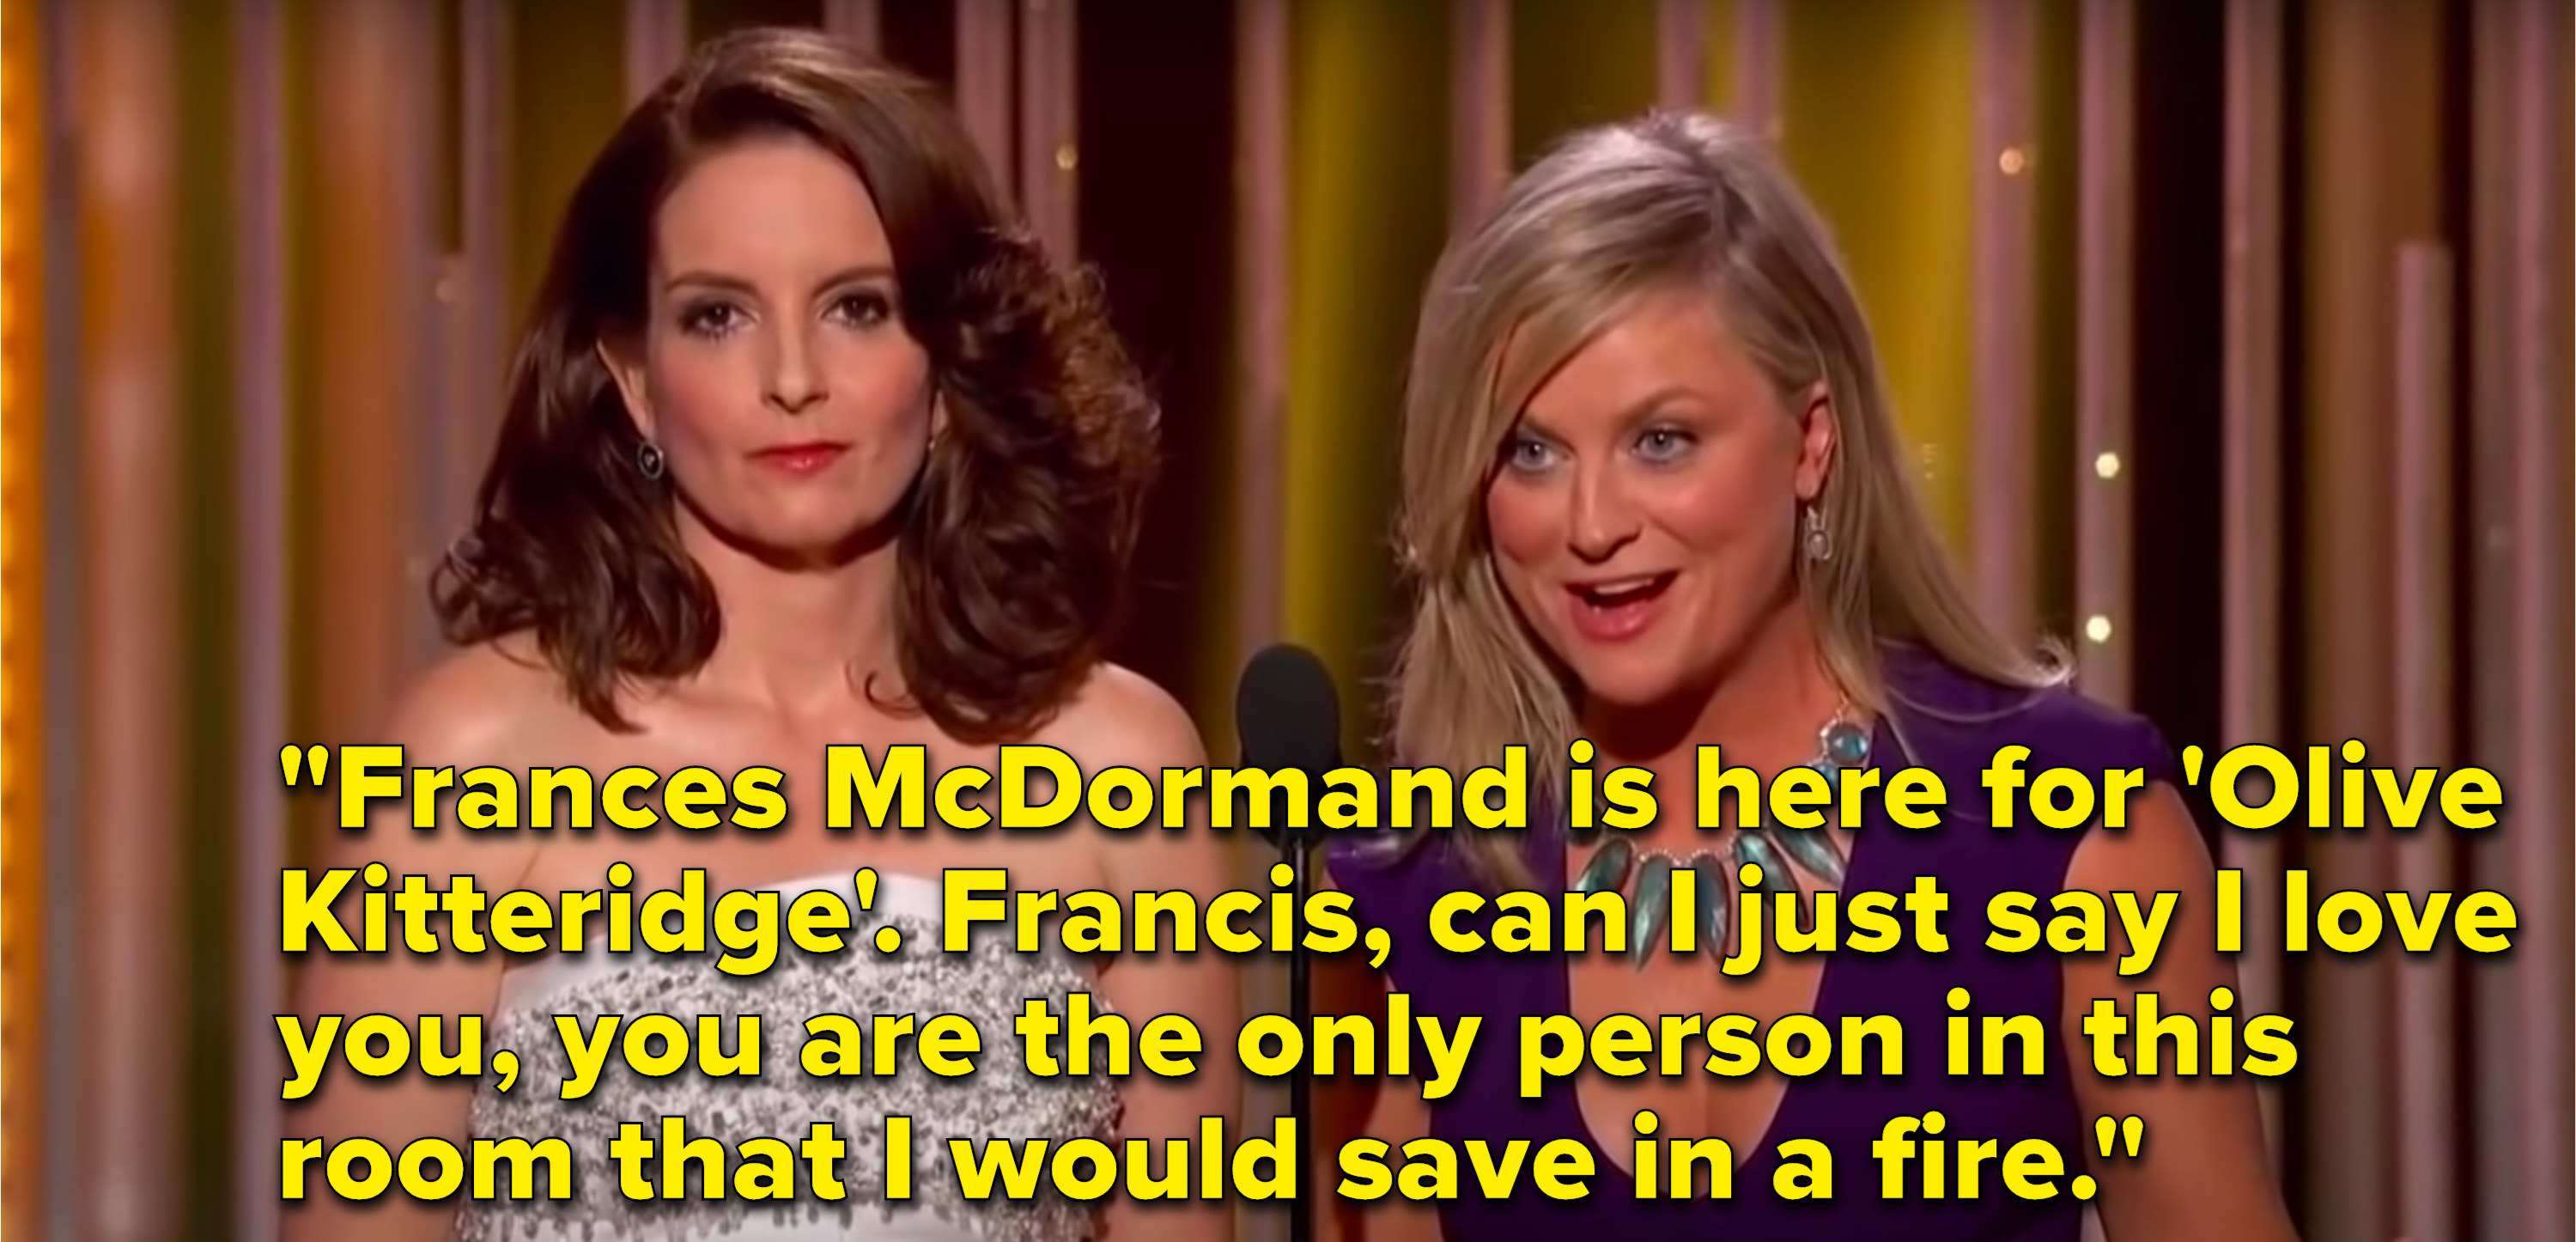 """Poehler says, """"Frances McDormand is here for 'Olive Kitteridge', Francis, can I just say I love you, you are the only person in this room that I would save in a fire"""""""